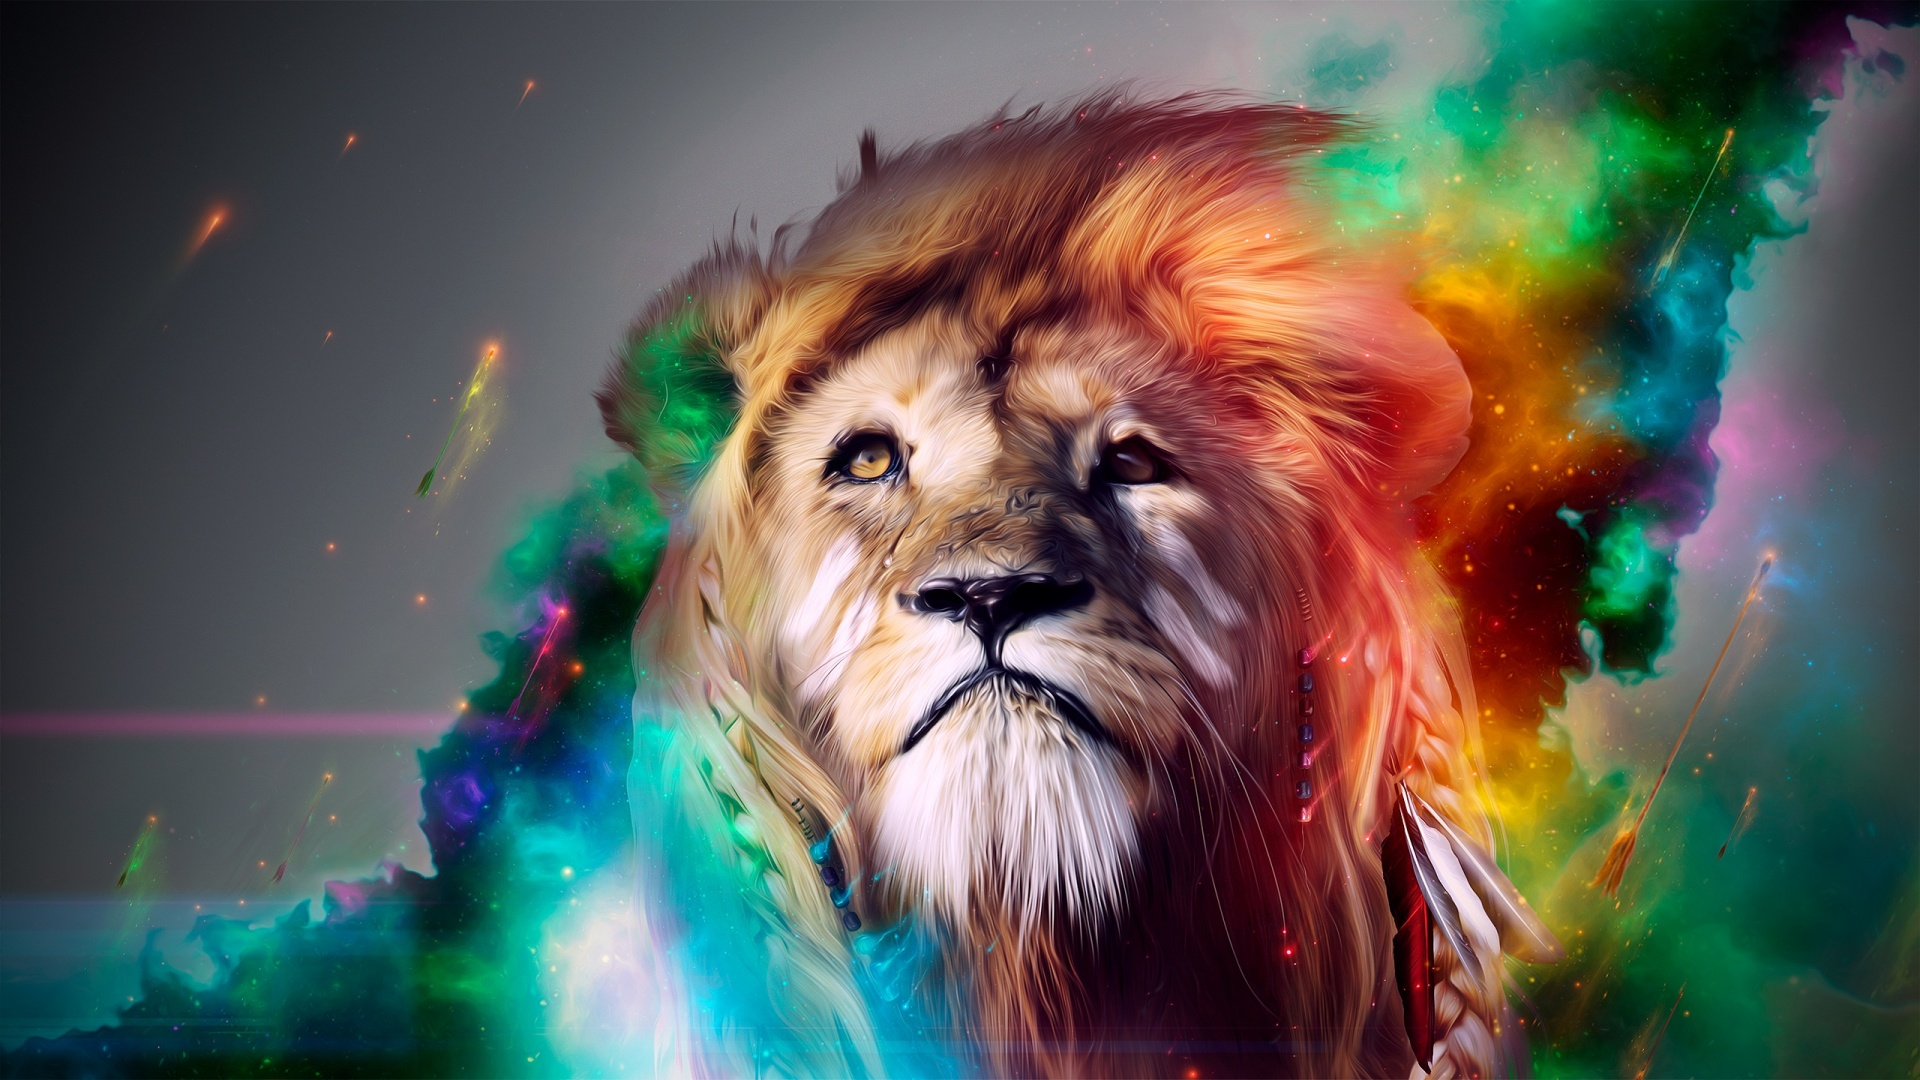 Cool Lion Art Wallpaper Widescreen 13012 Wallpaper WallpaperLepi 1920x1080